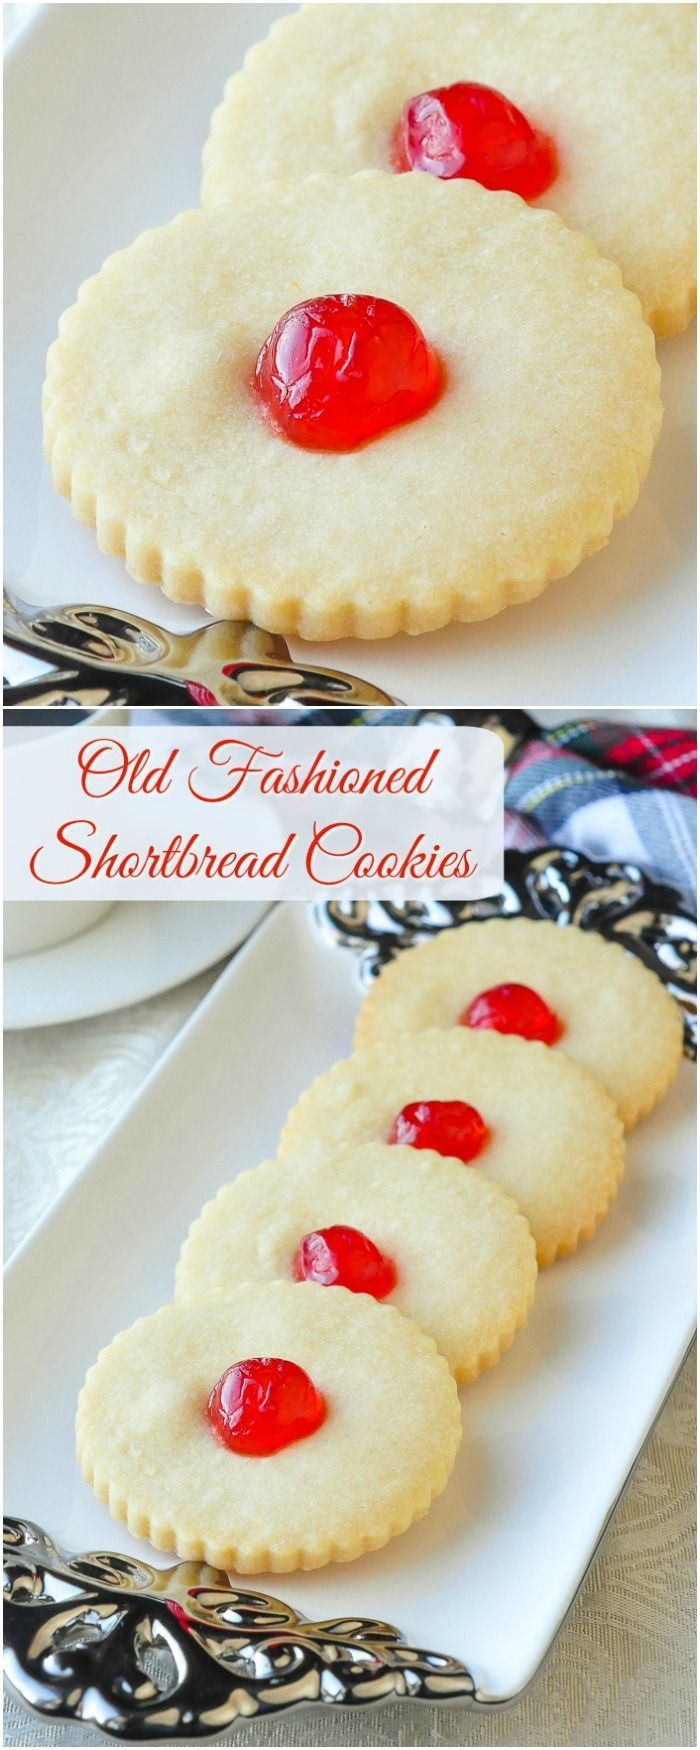 Old fashioned Shortbread Cookies - simple buttery perfection! Another discovery while updating our most popular recipes. This one stays in the TOP 25 all year round! (Old Fashioned Sweet Recipes)